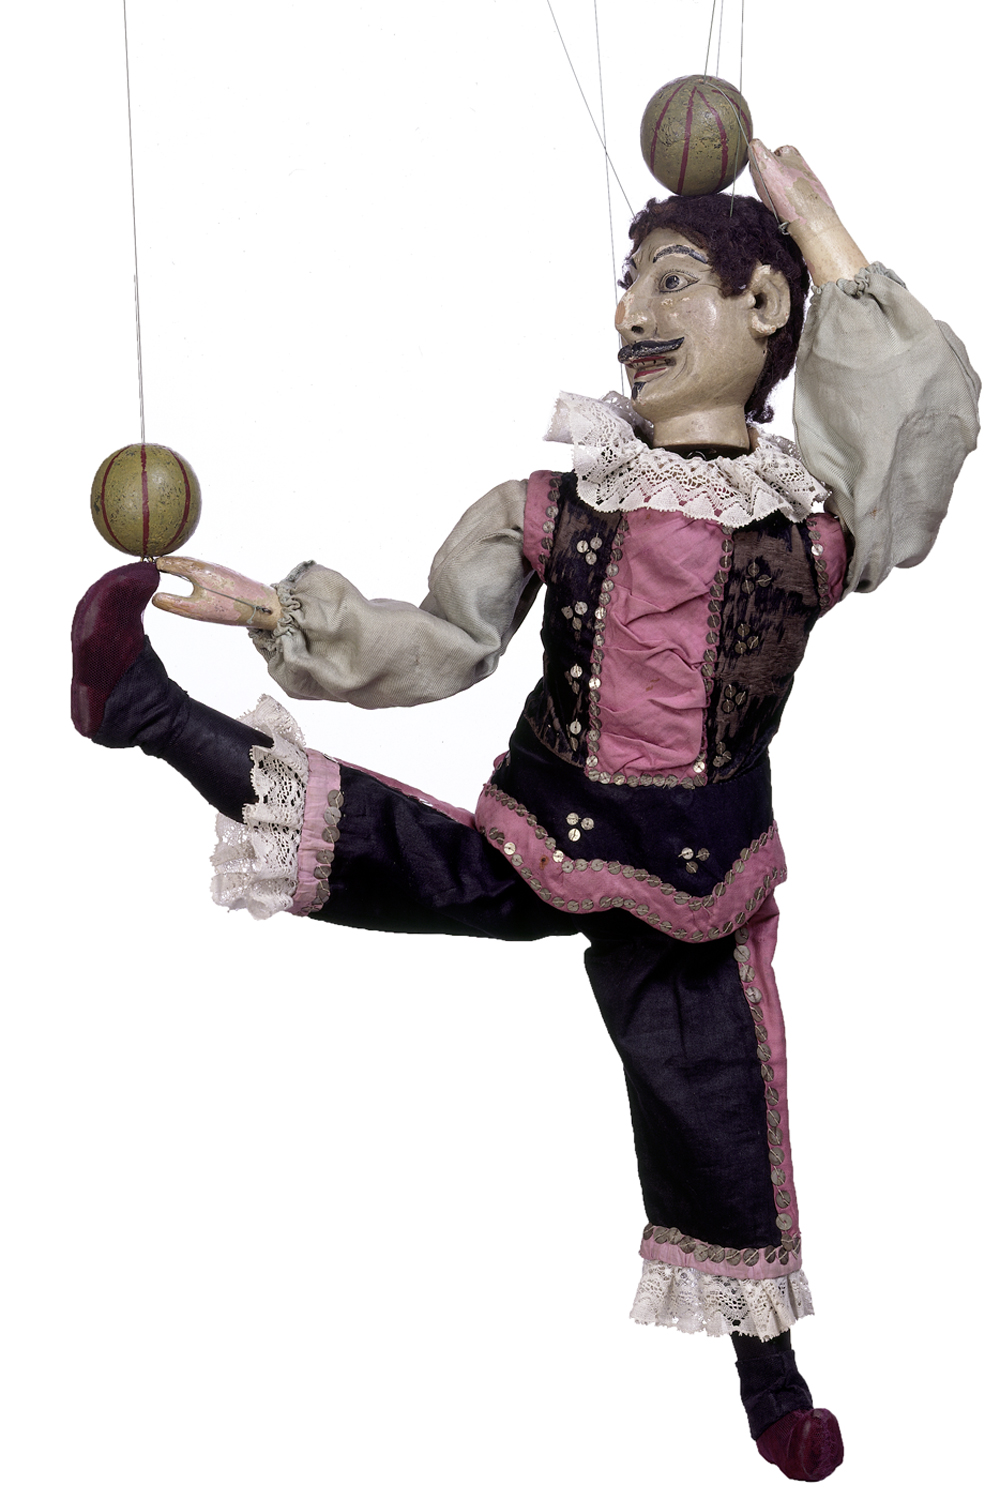 Puppet resources in the Theatre and Performance collections